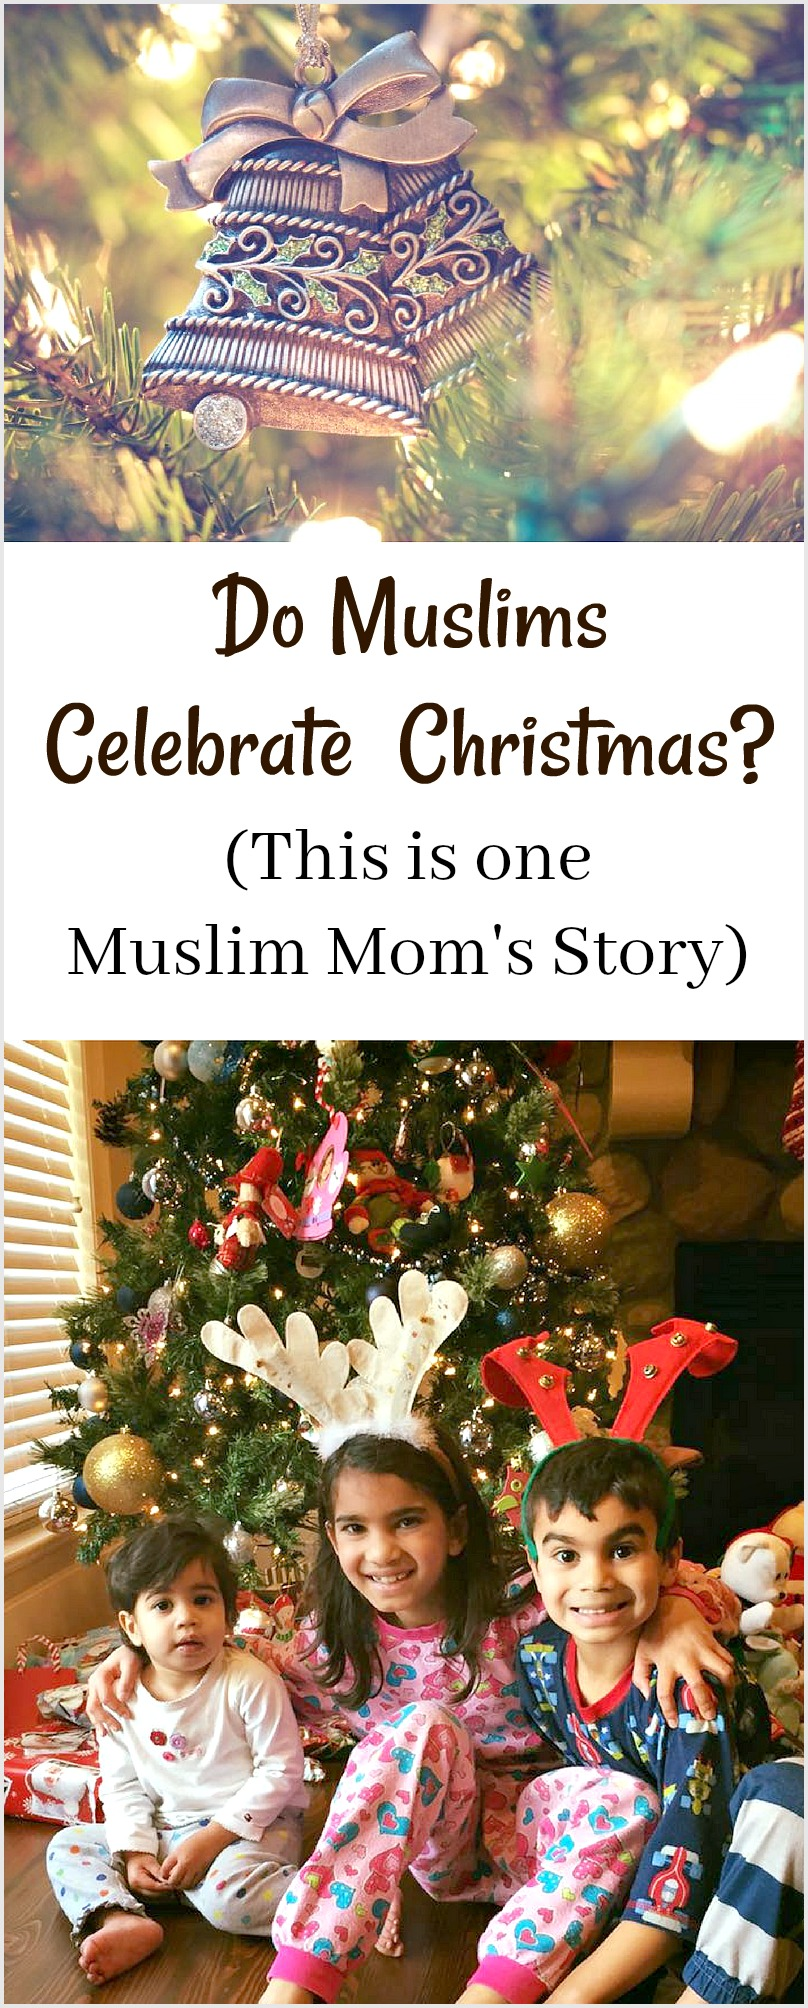 Do Muslims Celebrate Christmas_ One Muslim Moms Story